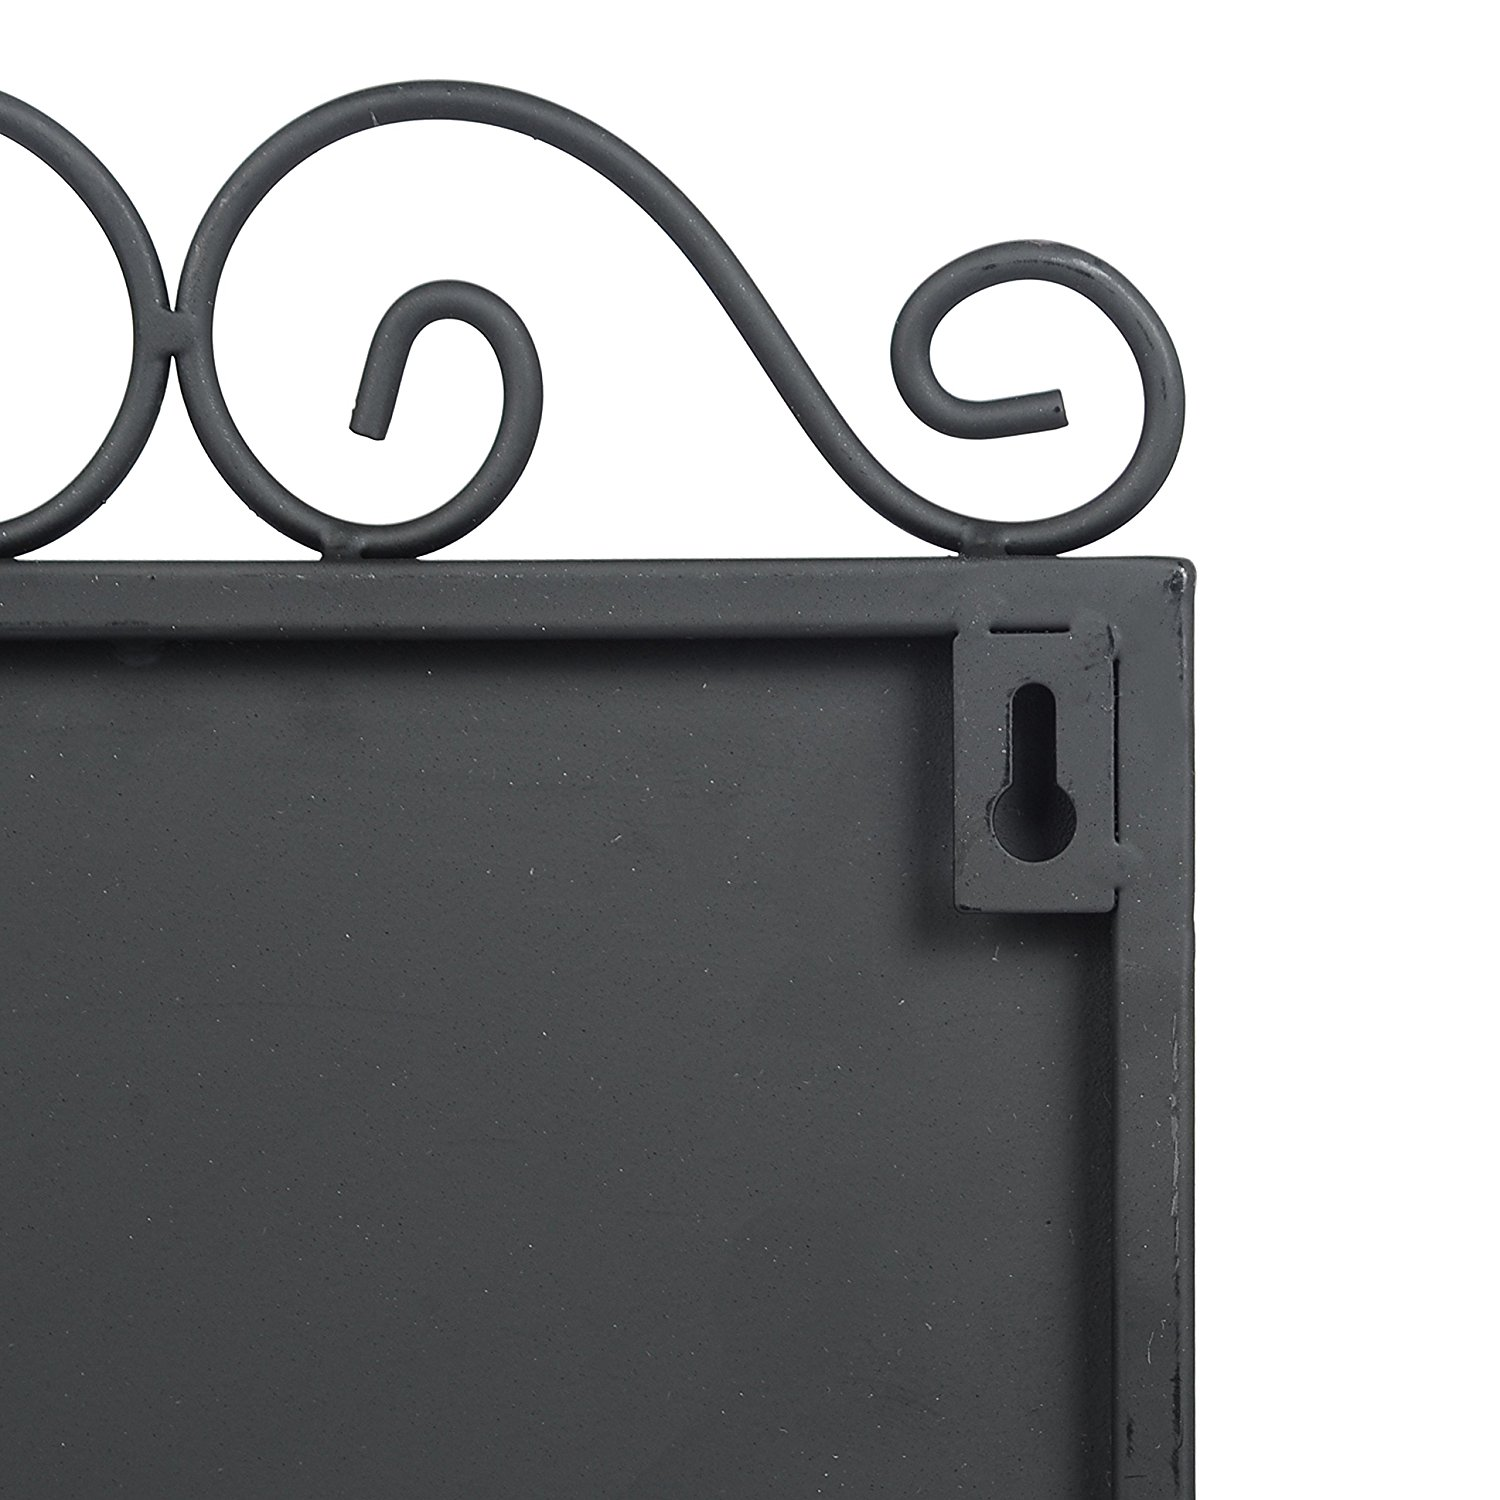 Wall Mounted Black Metal Scrollwork Design Erasable Chalkboard Memo Sign w/ Chalk Holder & 4 Key Hooks